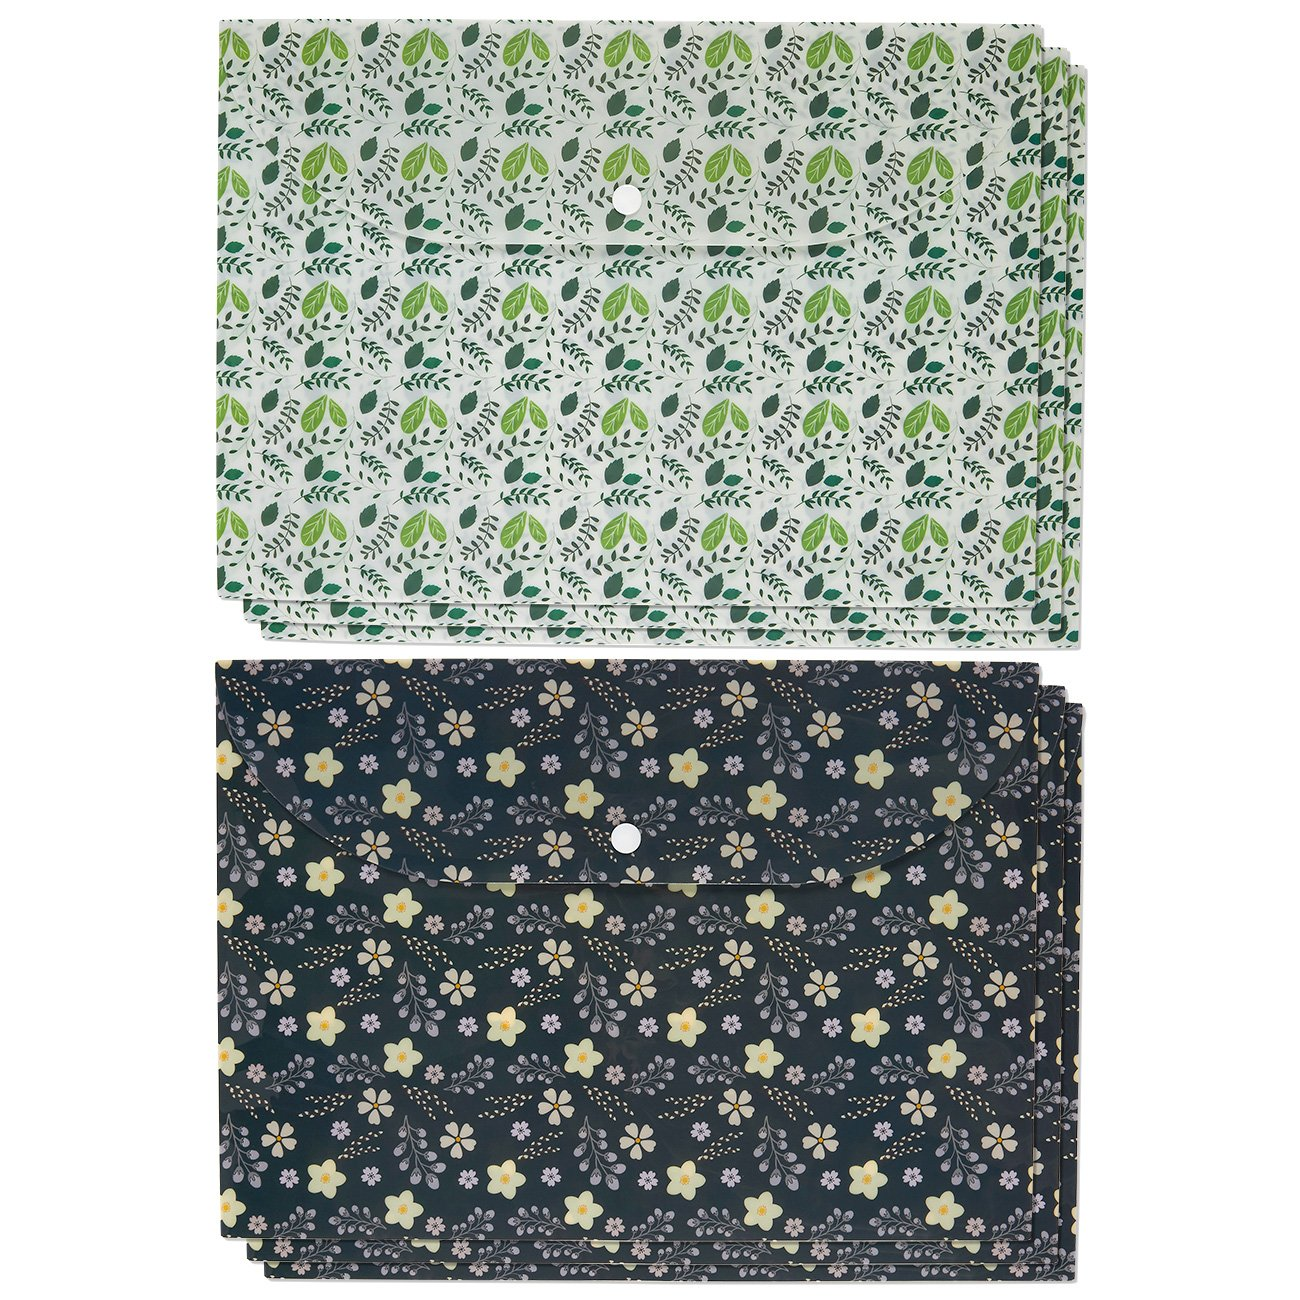 Designer File Folders - 6 Pack of Decorative A4 Letter Size Envelope Poly Folders with Snap Button in Vintage Leaves and Floral Patterns